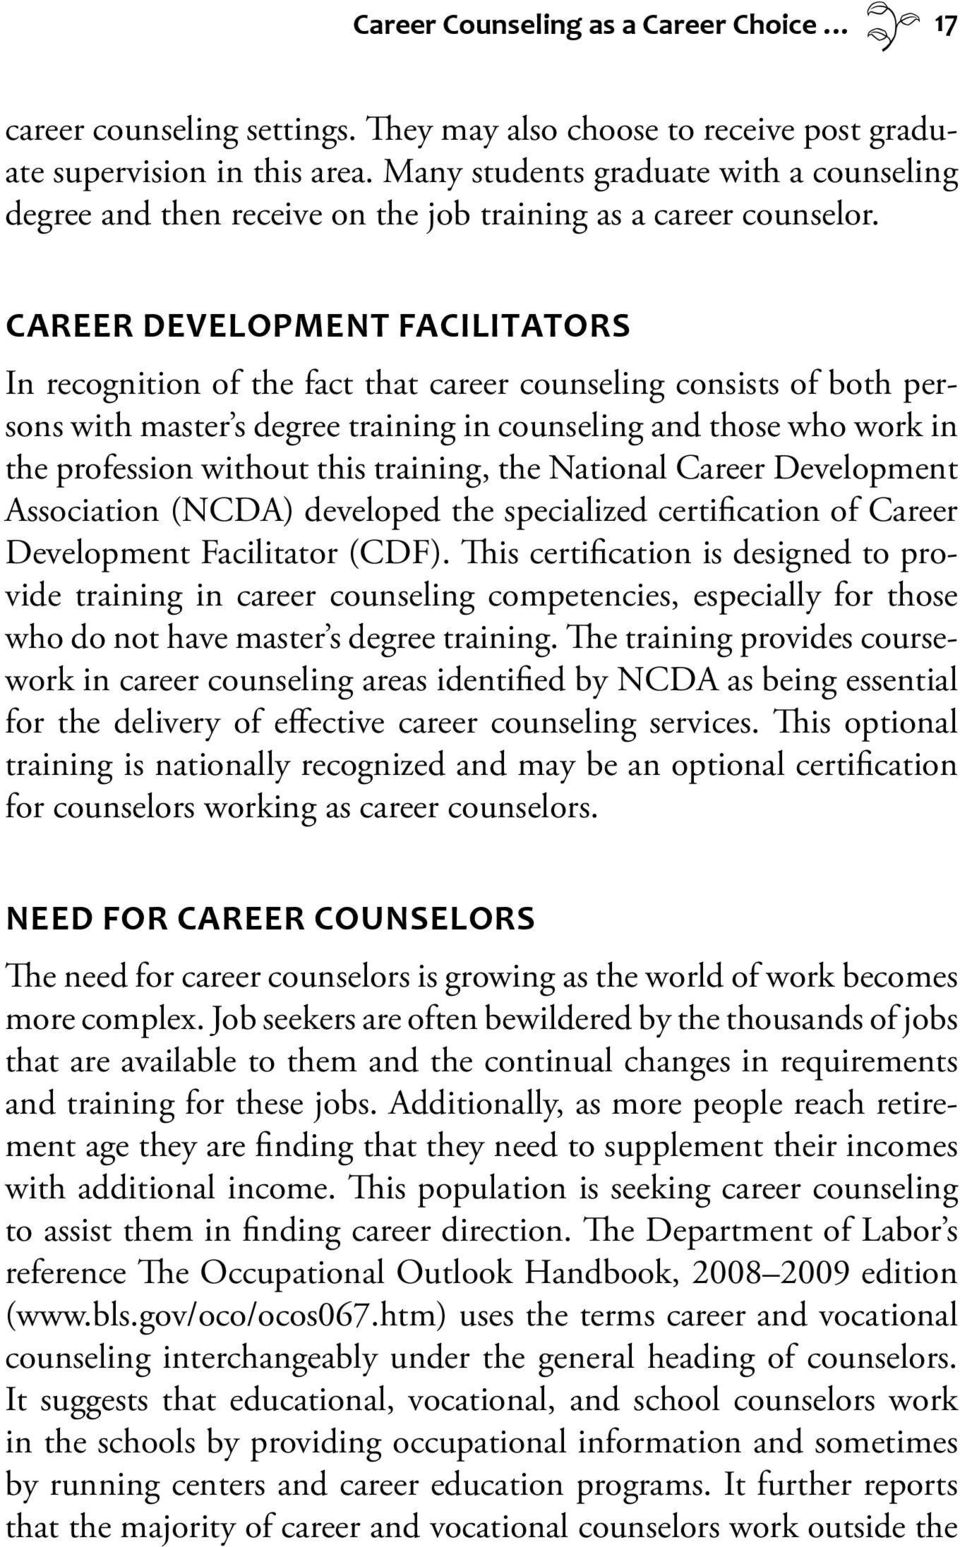 Careers In Counseling And Psychology Pdf